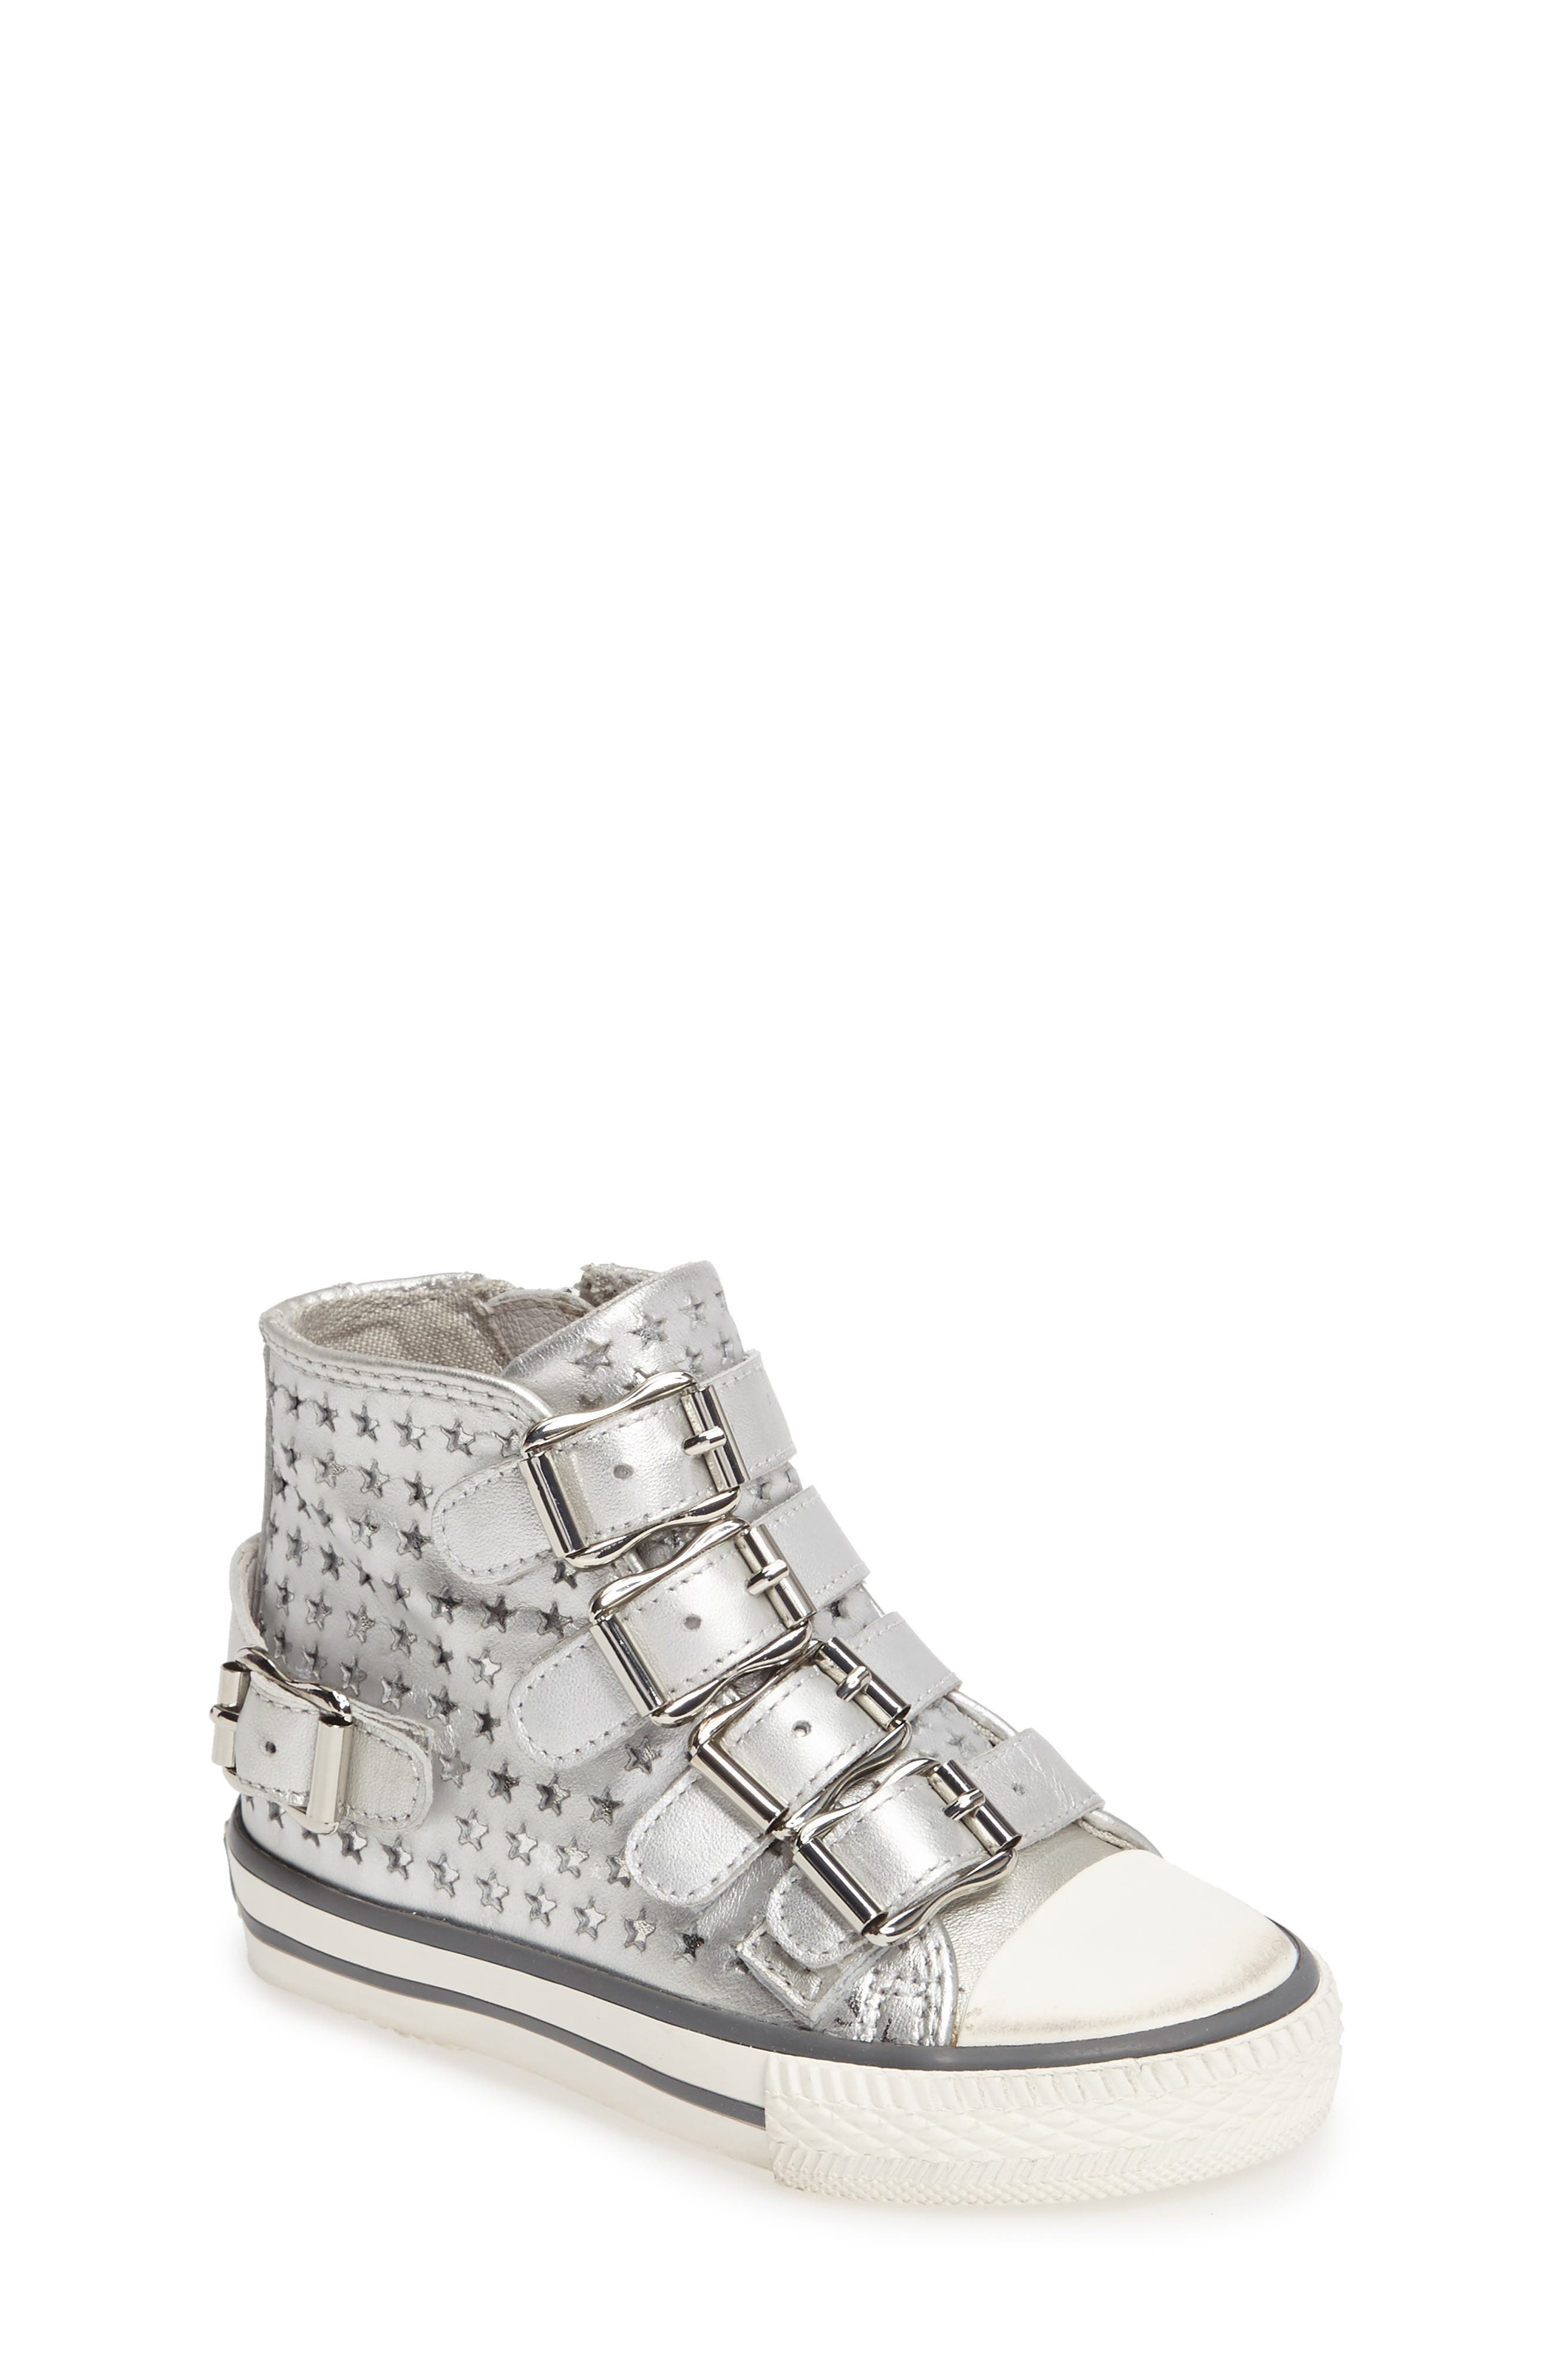 Vava Starboss Buckle Strap High Top Sneaker,                             Main thumbnail 1, color,                             041